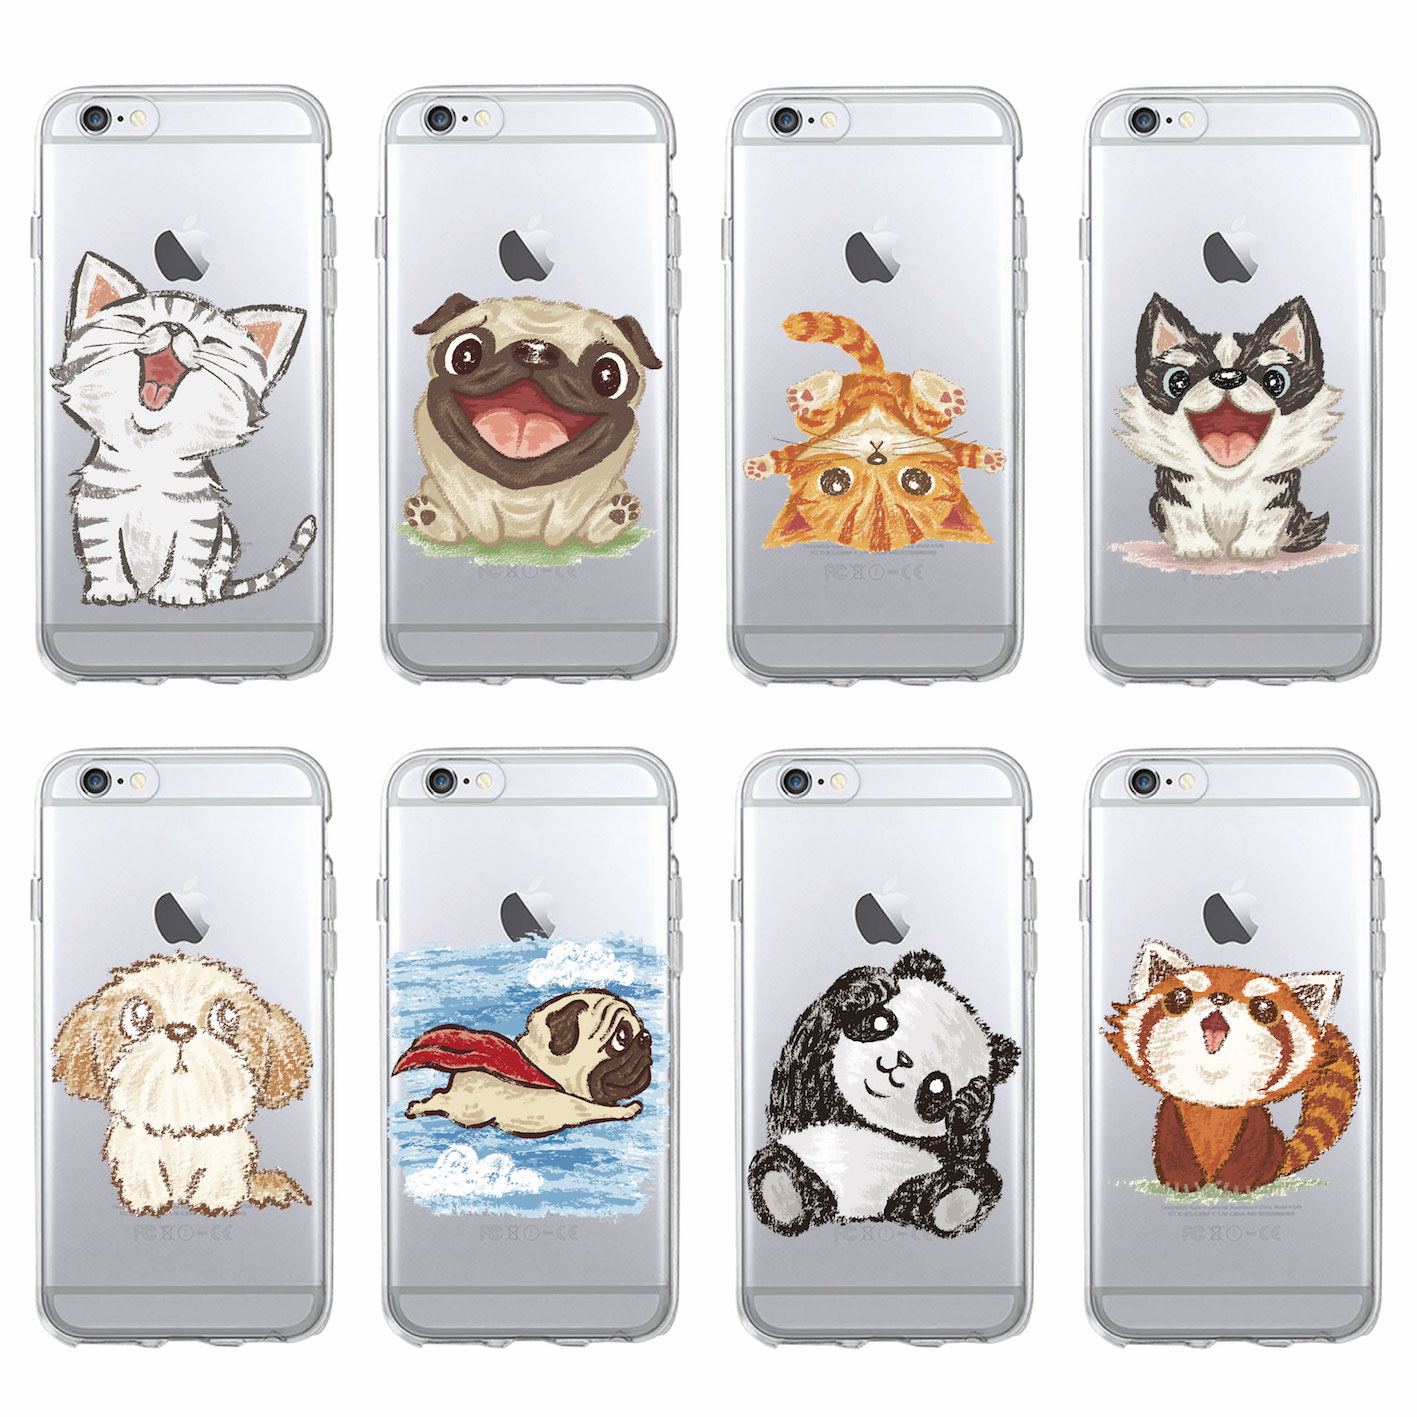 TOMOCOMO Cute Cat Panda Puppy Dog Bulldog Bear Cartoon Soft Phone Case Coque For iPhone 7 7Plus 6 6S 6Plus 8 8Plus X SAMSUNG